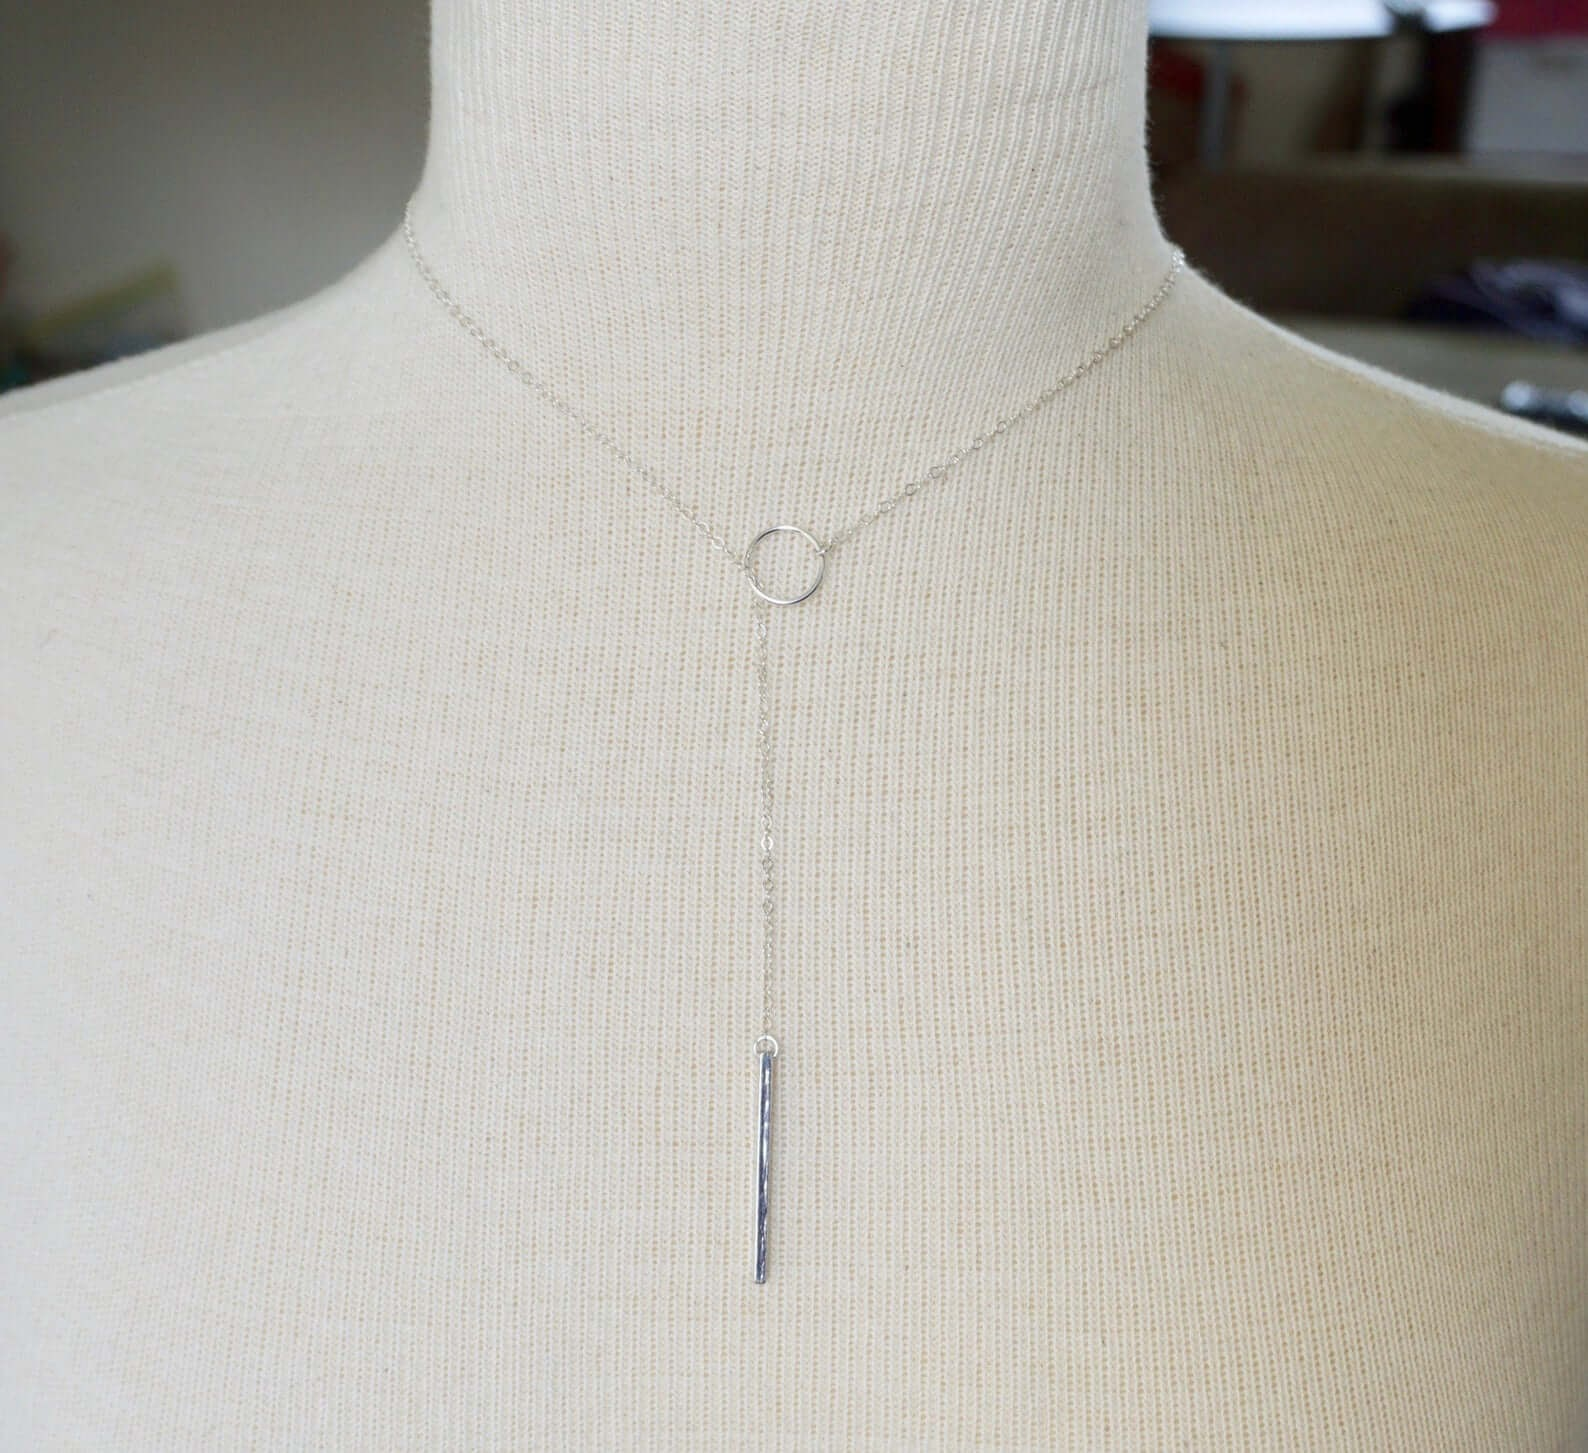 Bar and Lariat Necklace